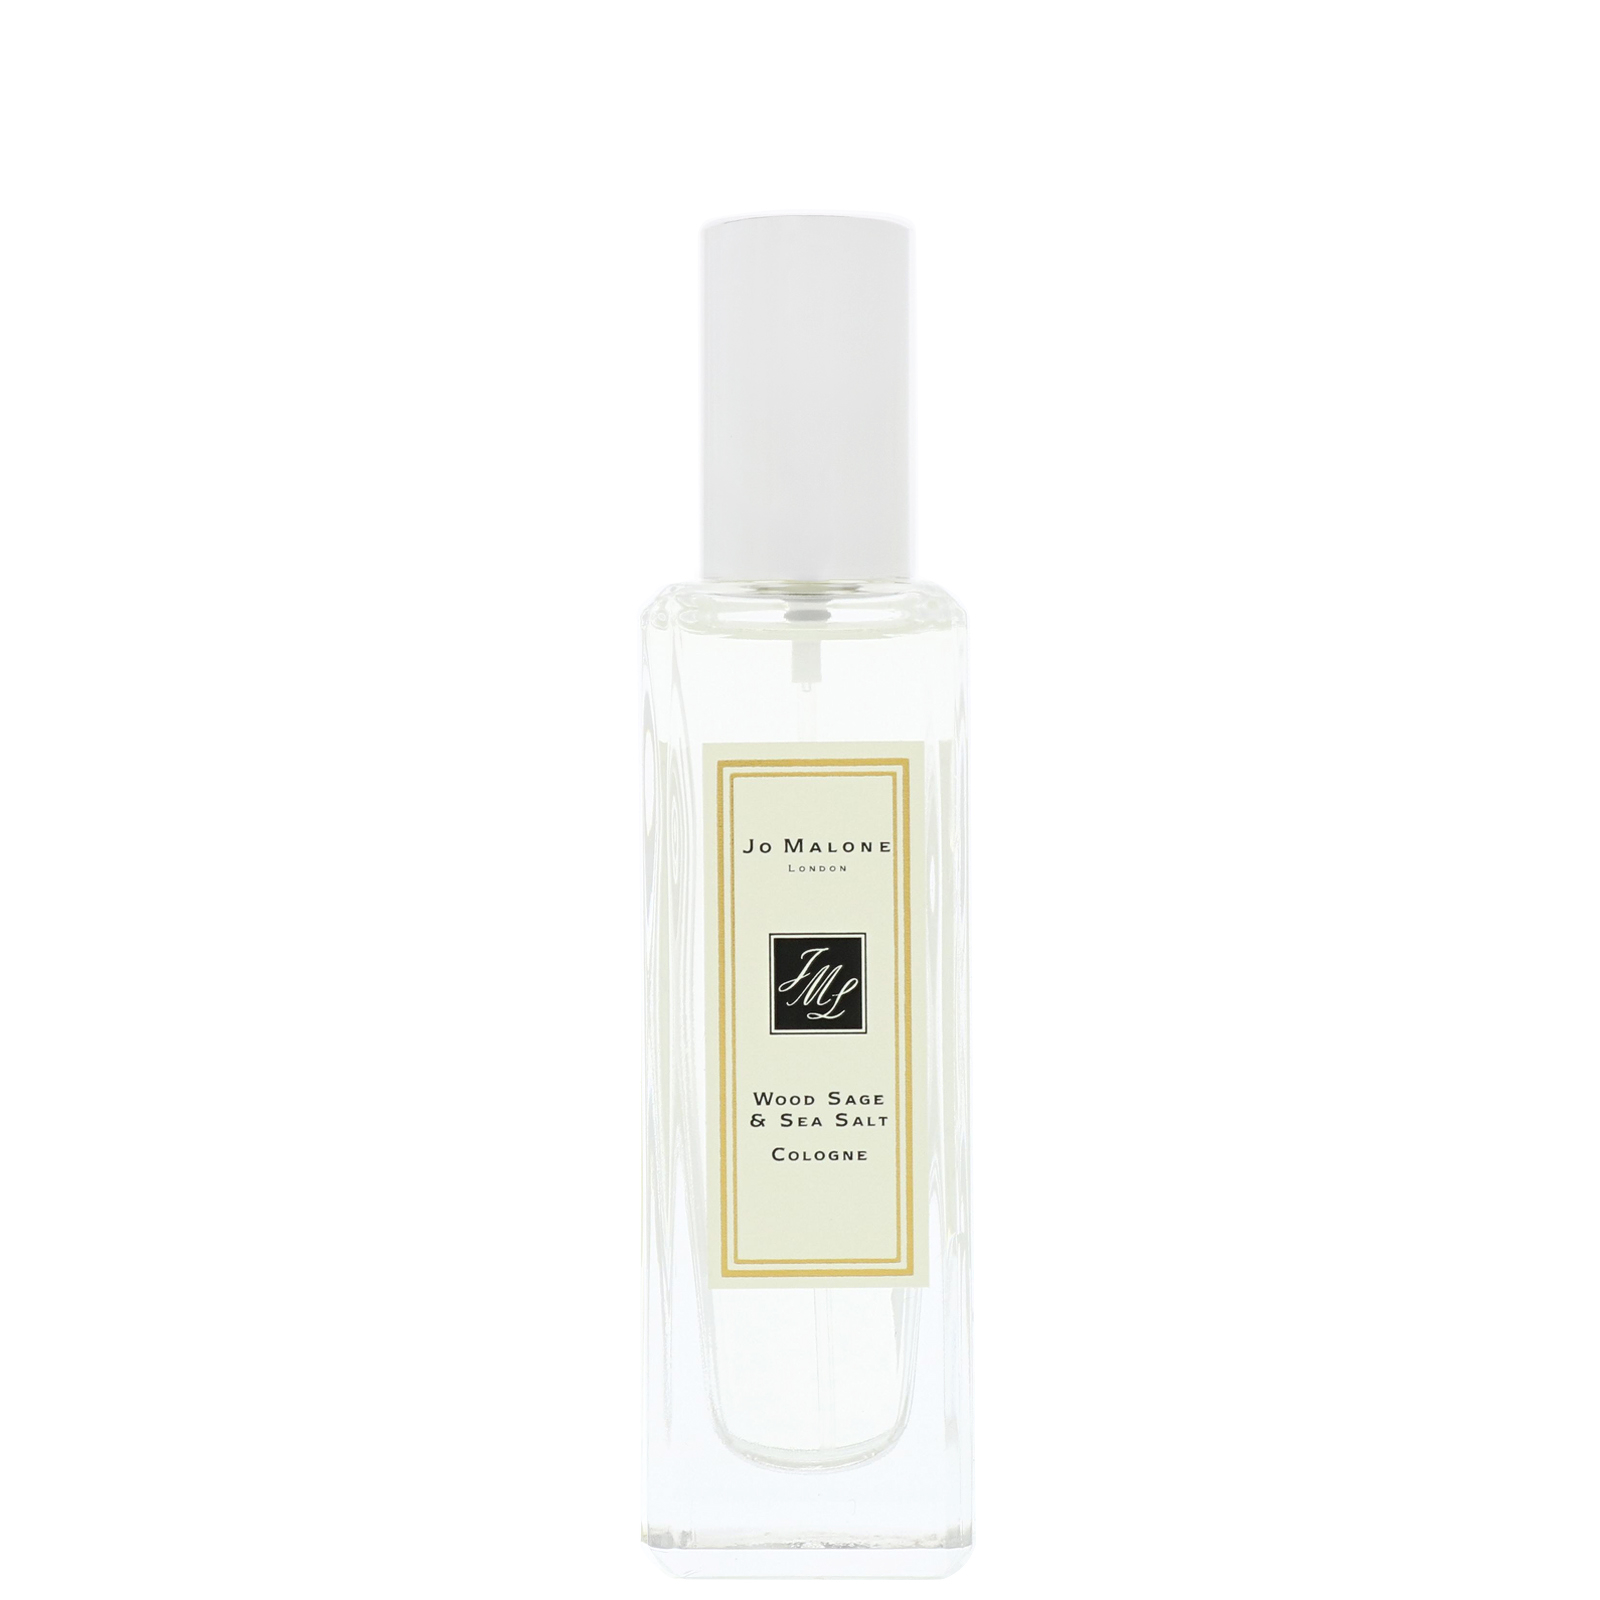 Jo Malone Wood Sage & Sea Salt Eau de Cologne Spray 30ml